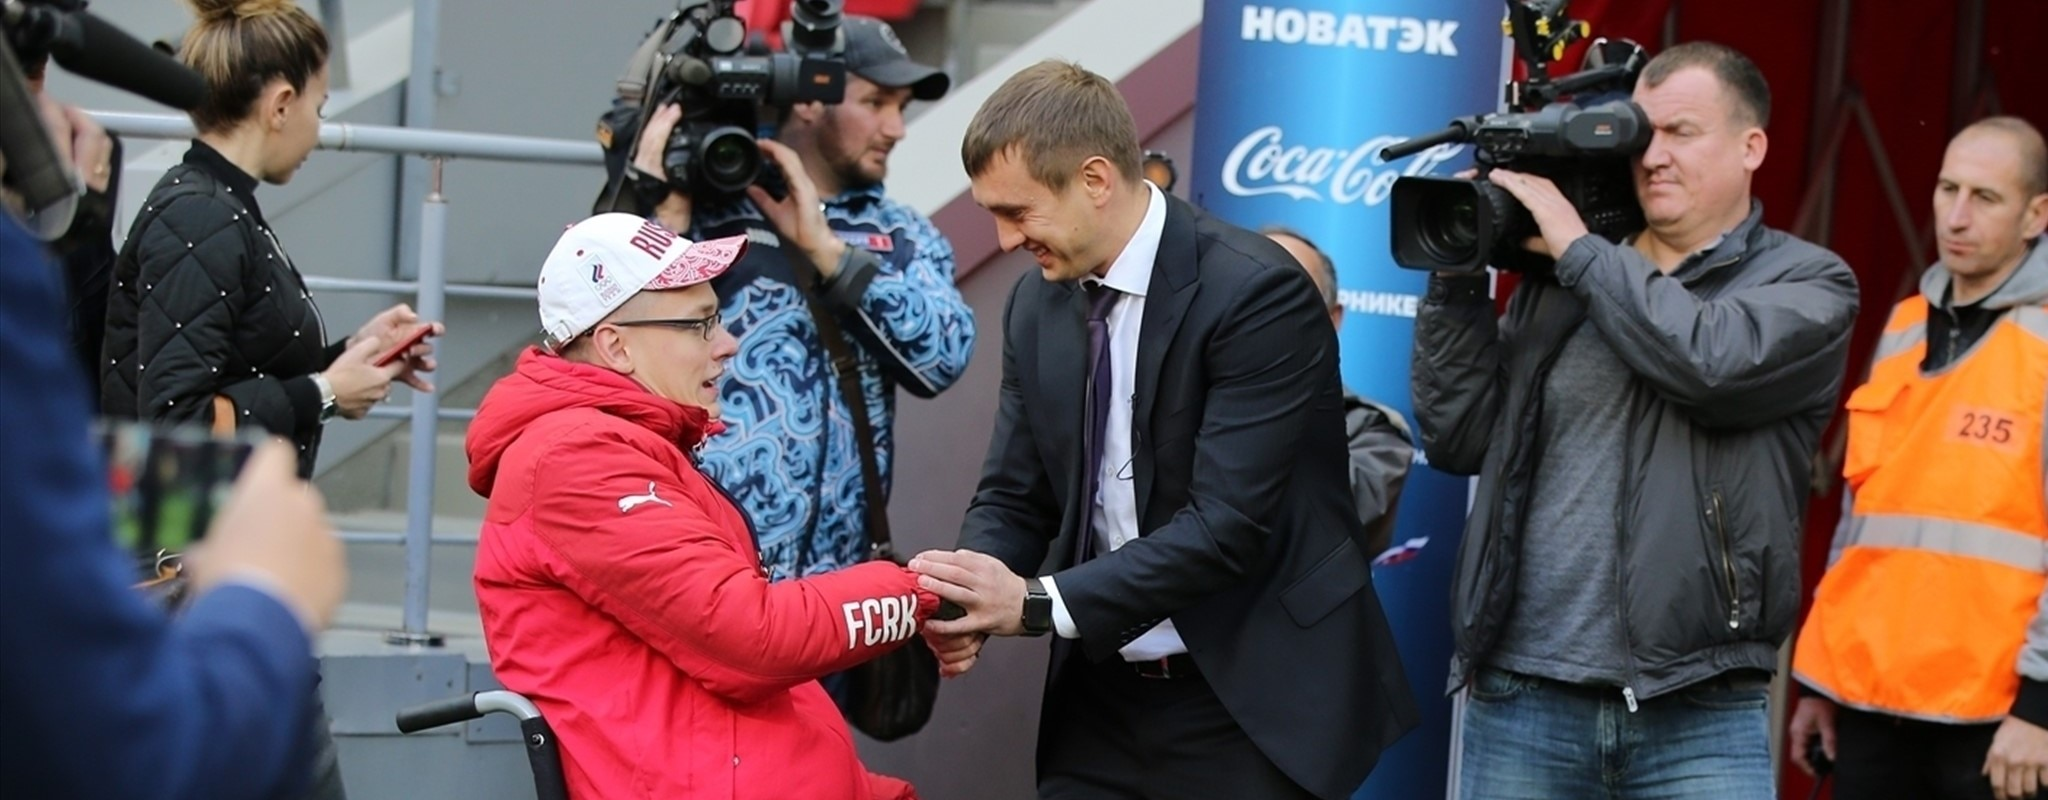 Russian football authorities proving disability is no obstacle